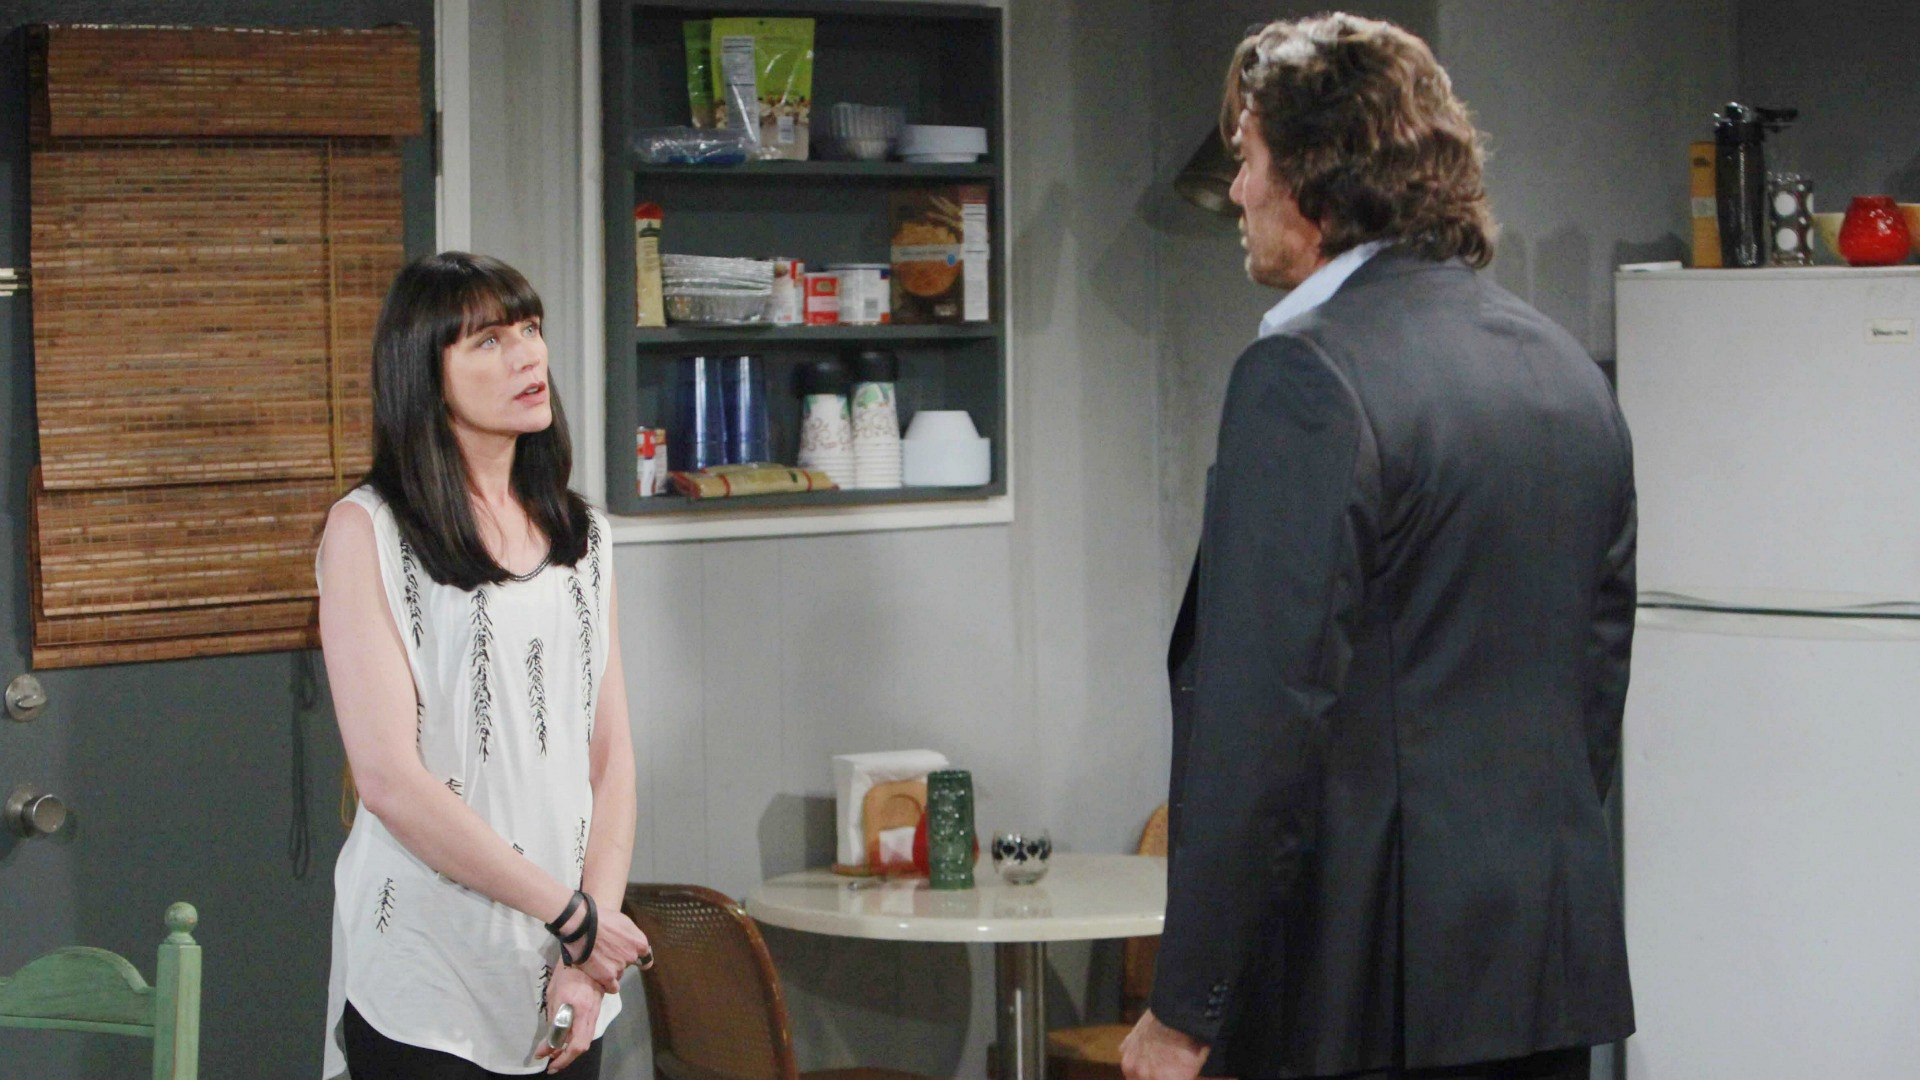 Furious with the situation at hand, Ridge confronts Quinn about her manipulation of Eric and her disrespect of Steffy.